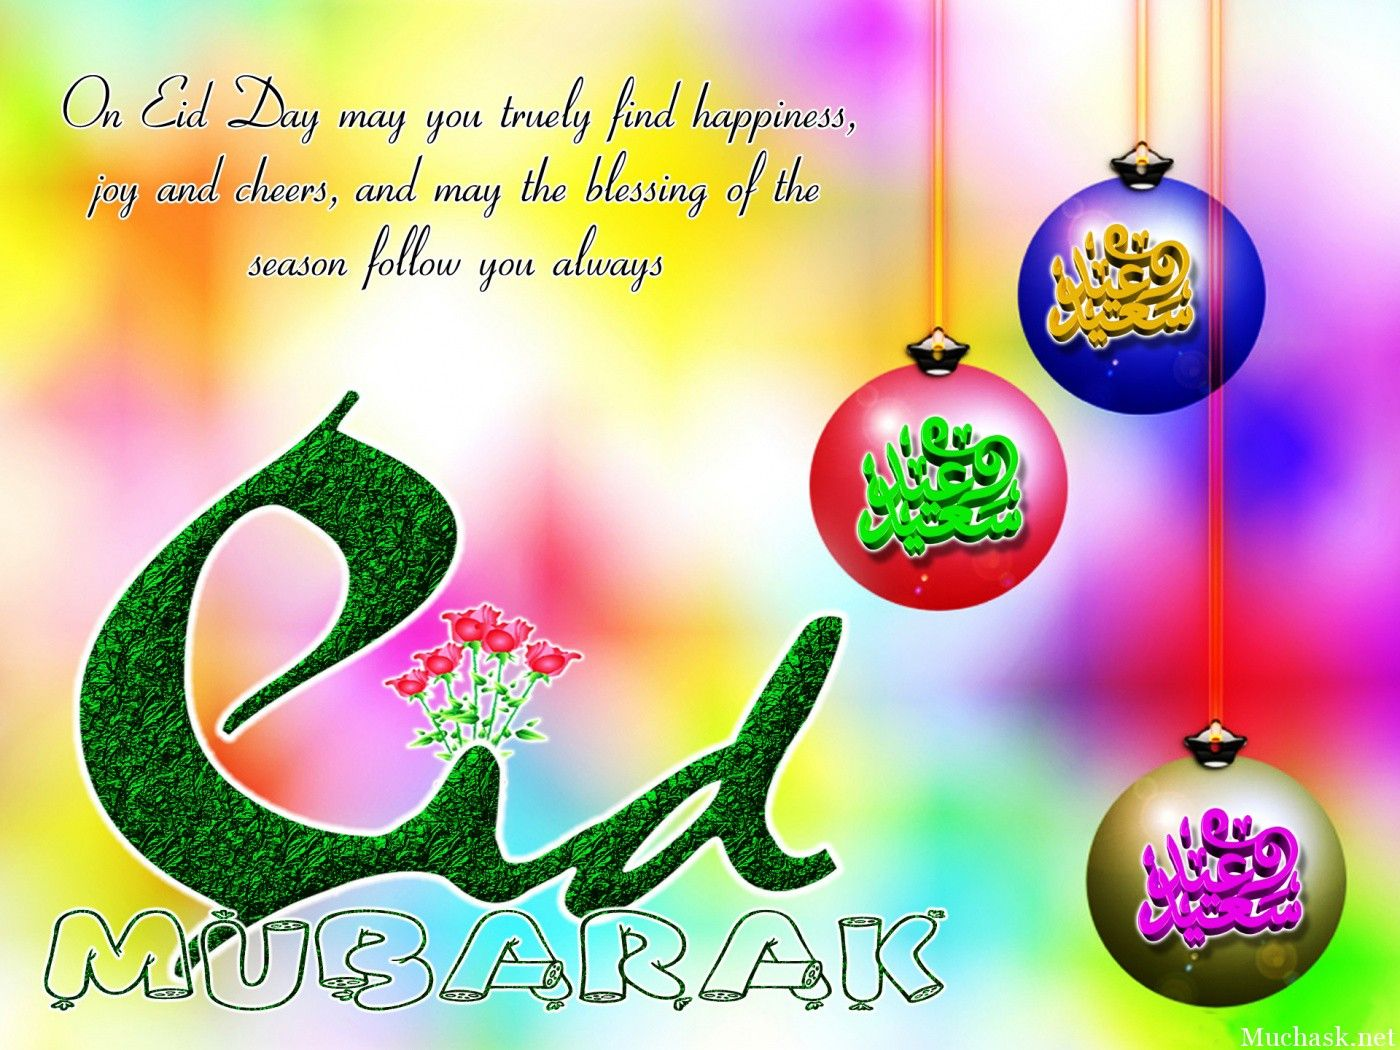 Eid mubarak 2015 is coming check out the meaning of eid mubarak eid mubarak 2015 is coming check out the meaning of eid mubarak in turkey kristyandbryce Images